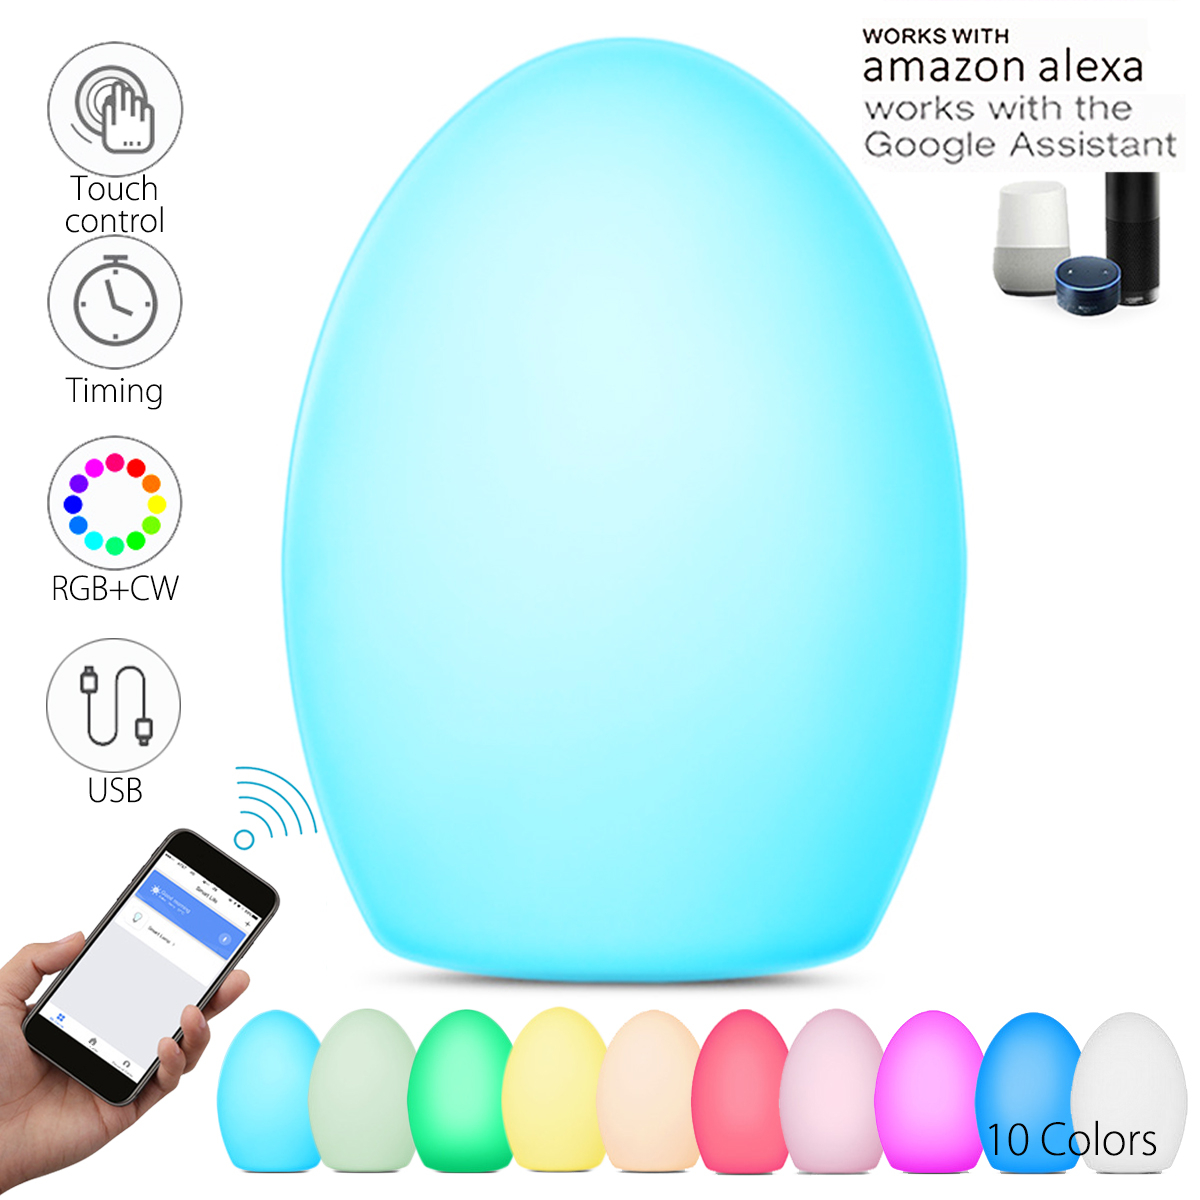 Smuxi LED Night Light WIFI Smart Table Desk Touch Control Night lamp Lighting For Alexa GOOGLE HOME 10 Colors Changing